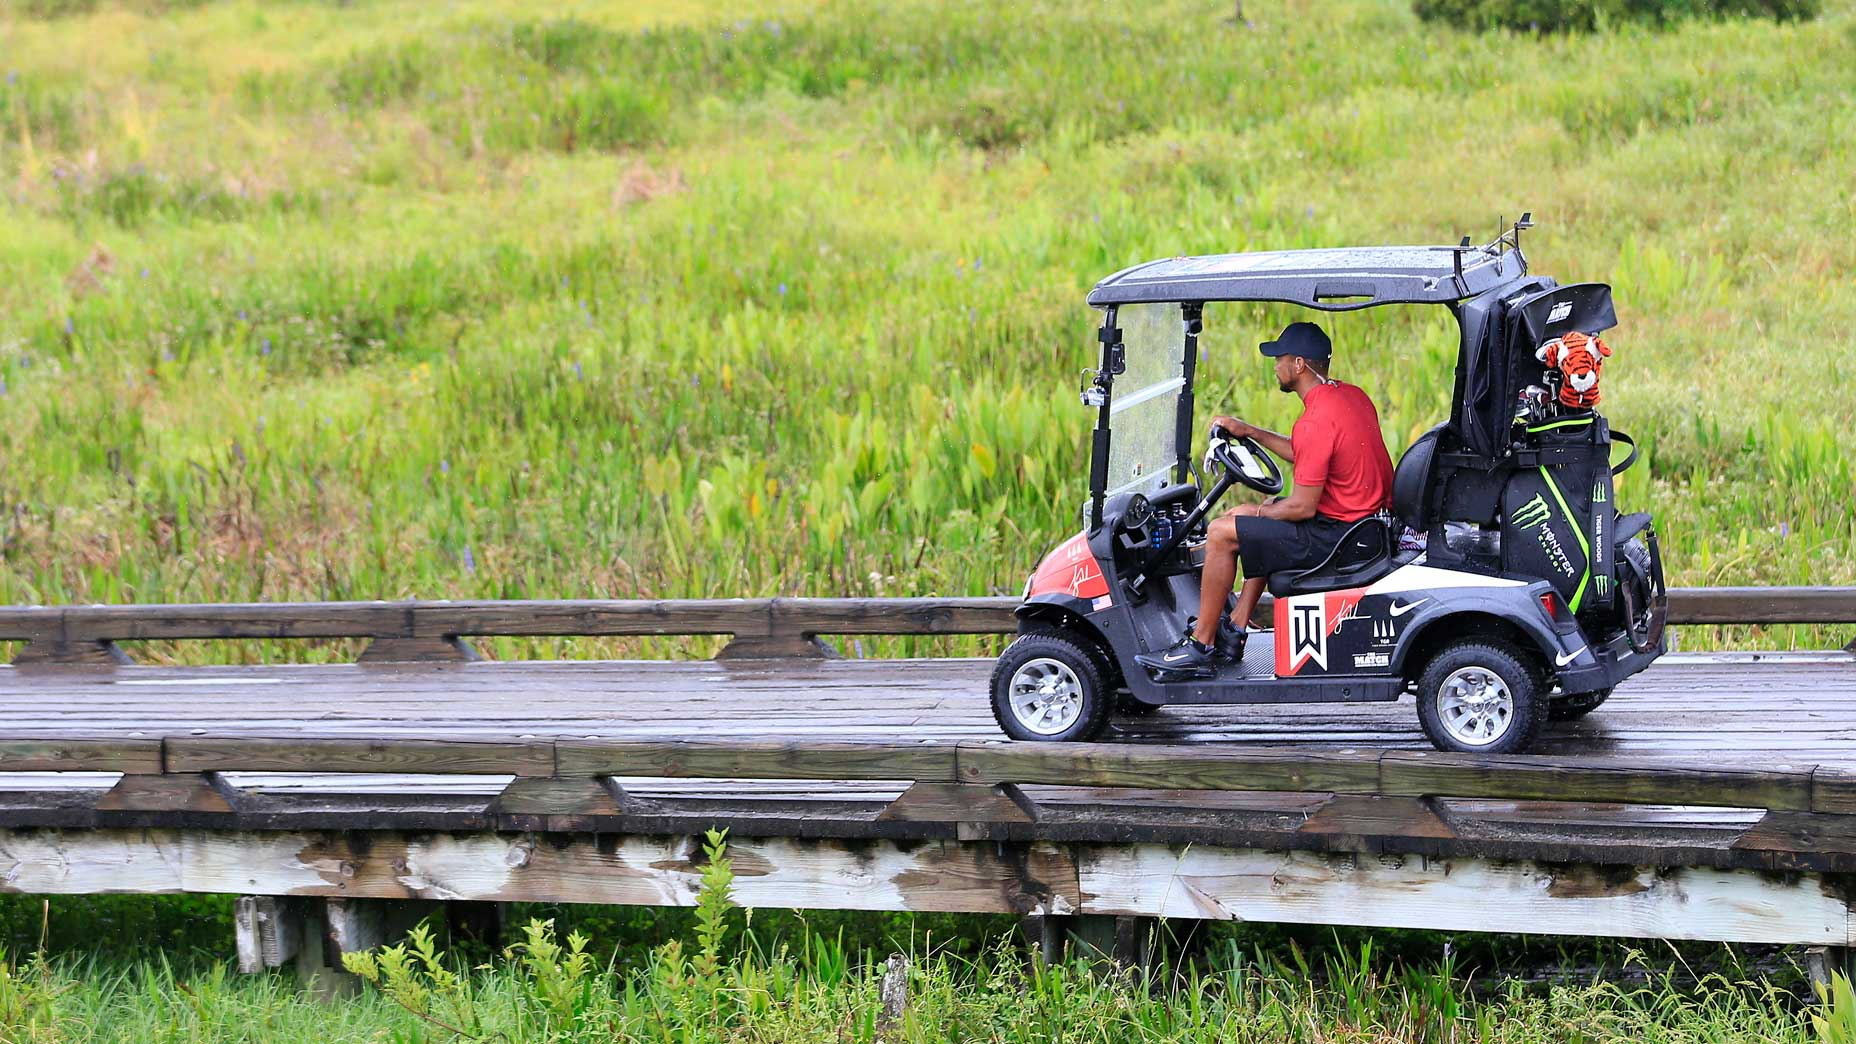 Tiger Woods drives to the 1st tee at Medalist Golf Club.